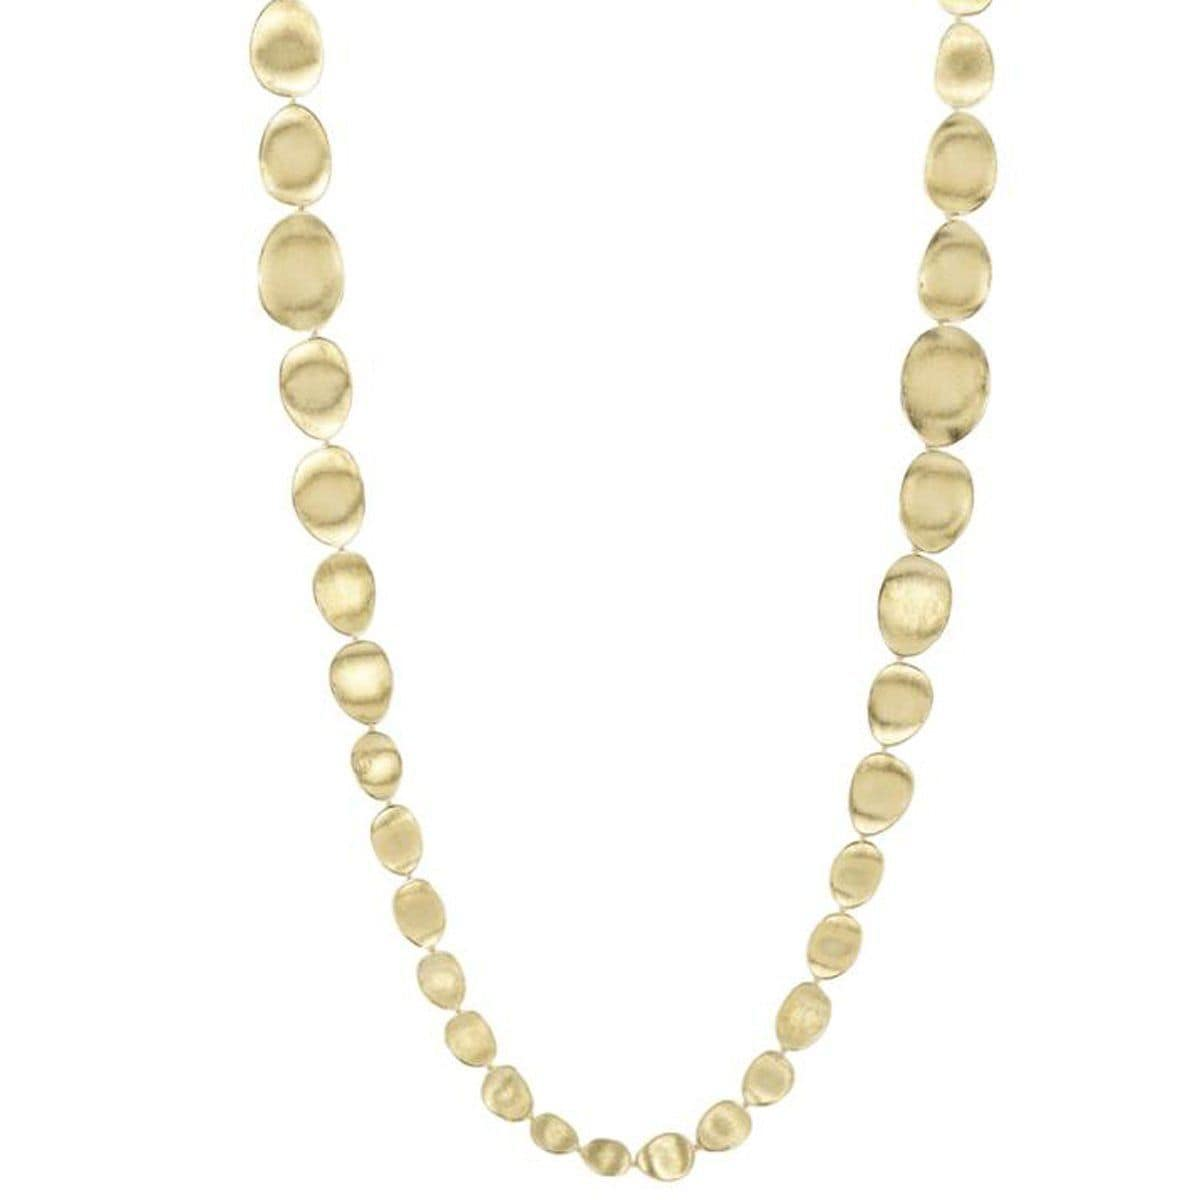 "Lunaria Medium Double Wave Necklace - CB1885 Y 39.25""-Marco Bicego-Renee Taylor Gallery"